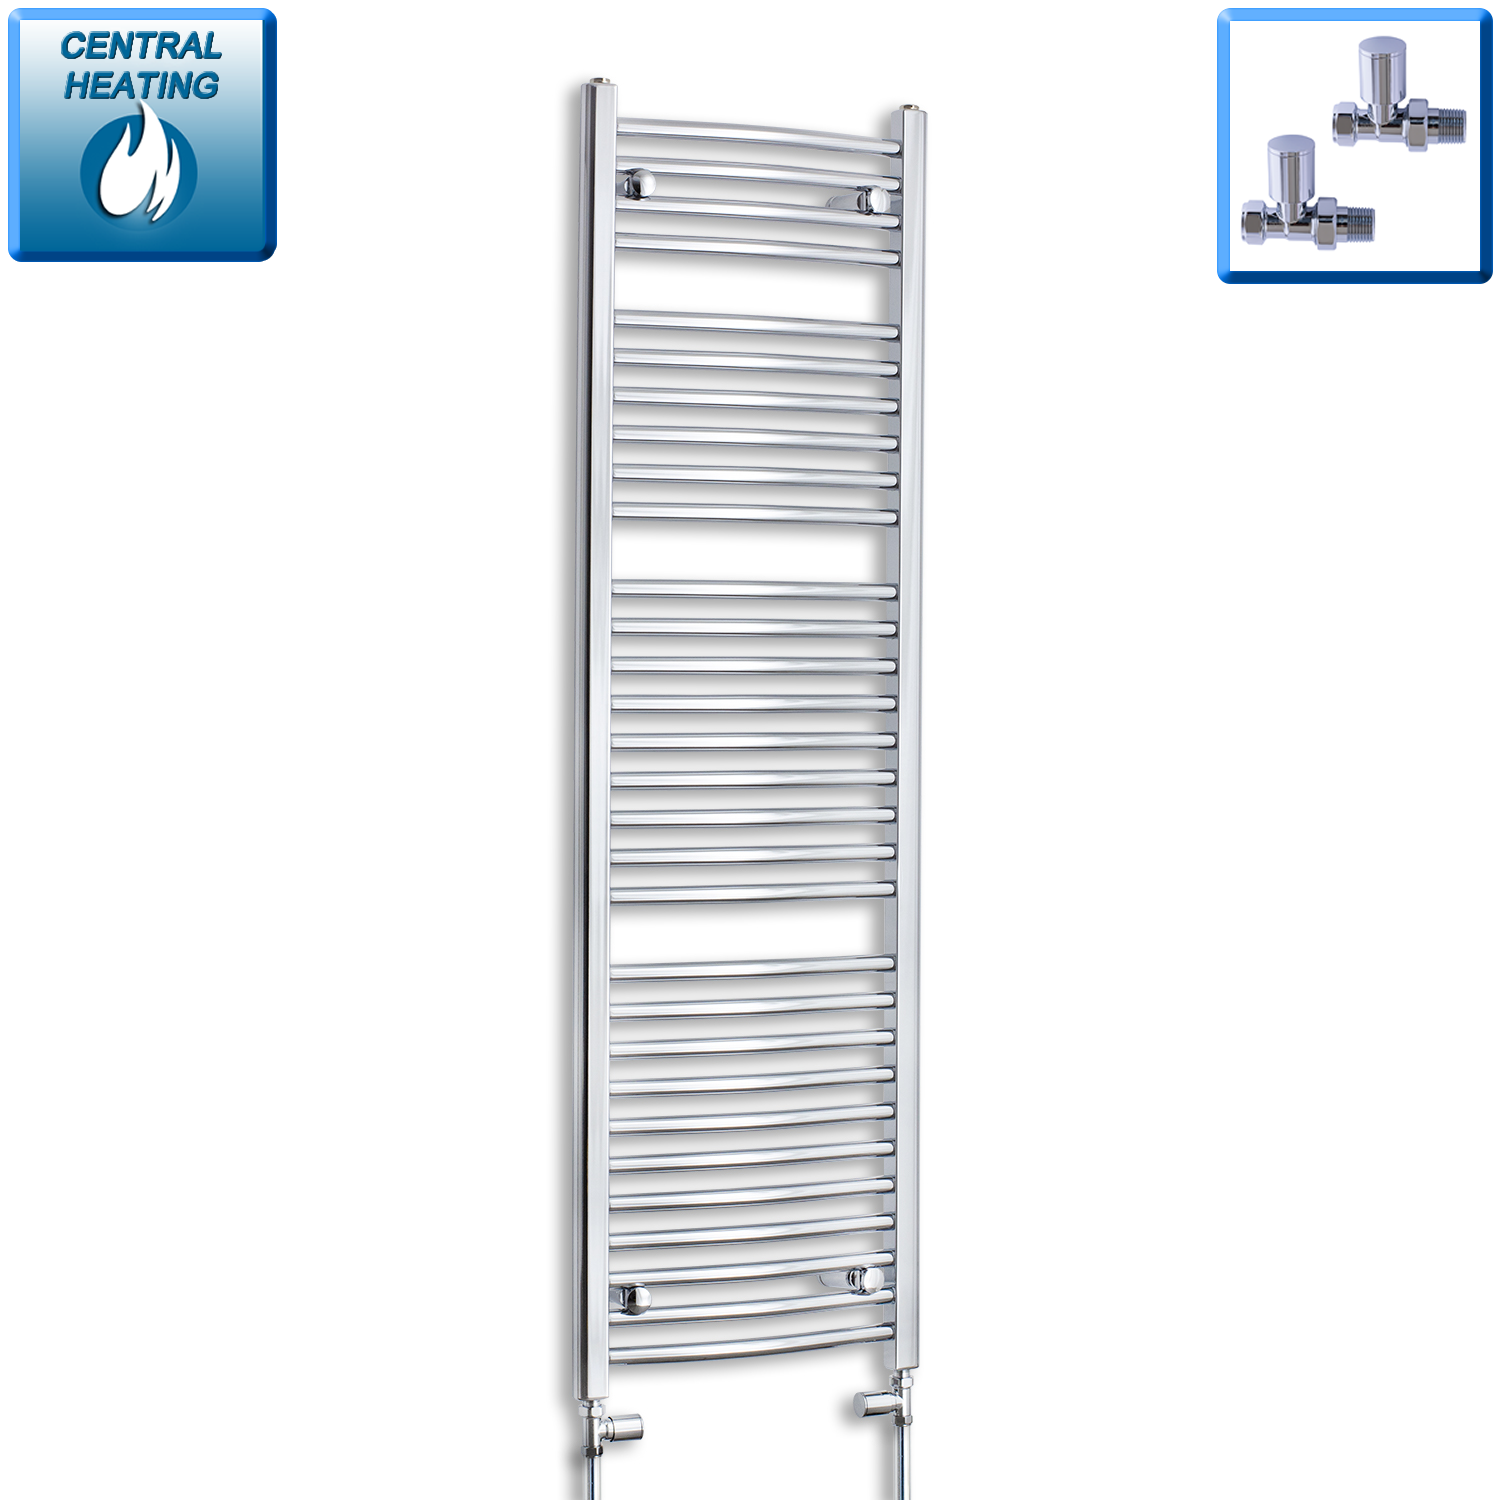 450mm Wide 1500mm High Chrome Towel Rail Radiator With Straight Valve